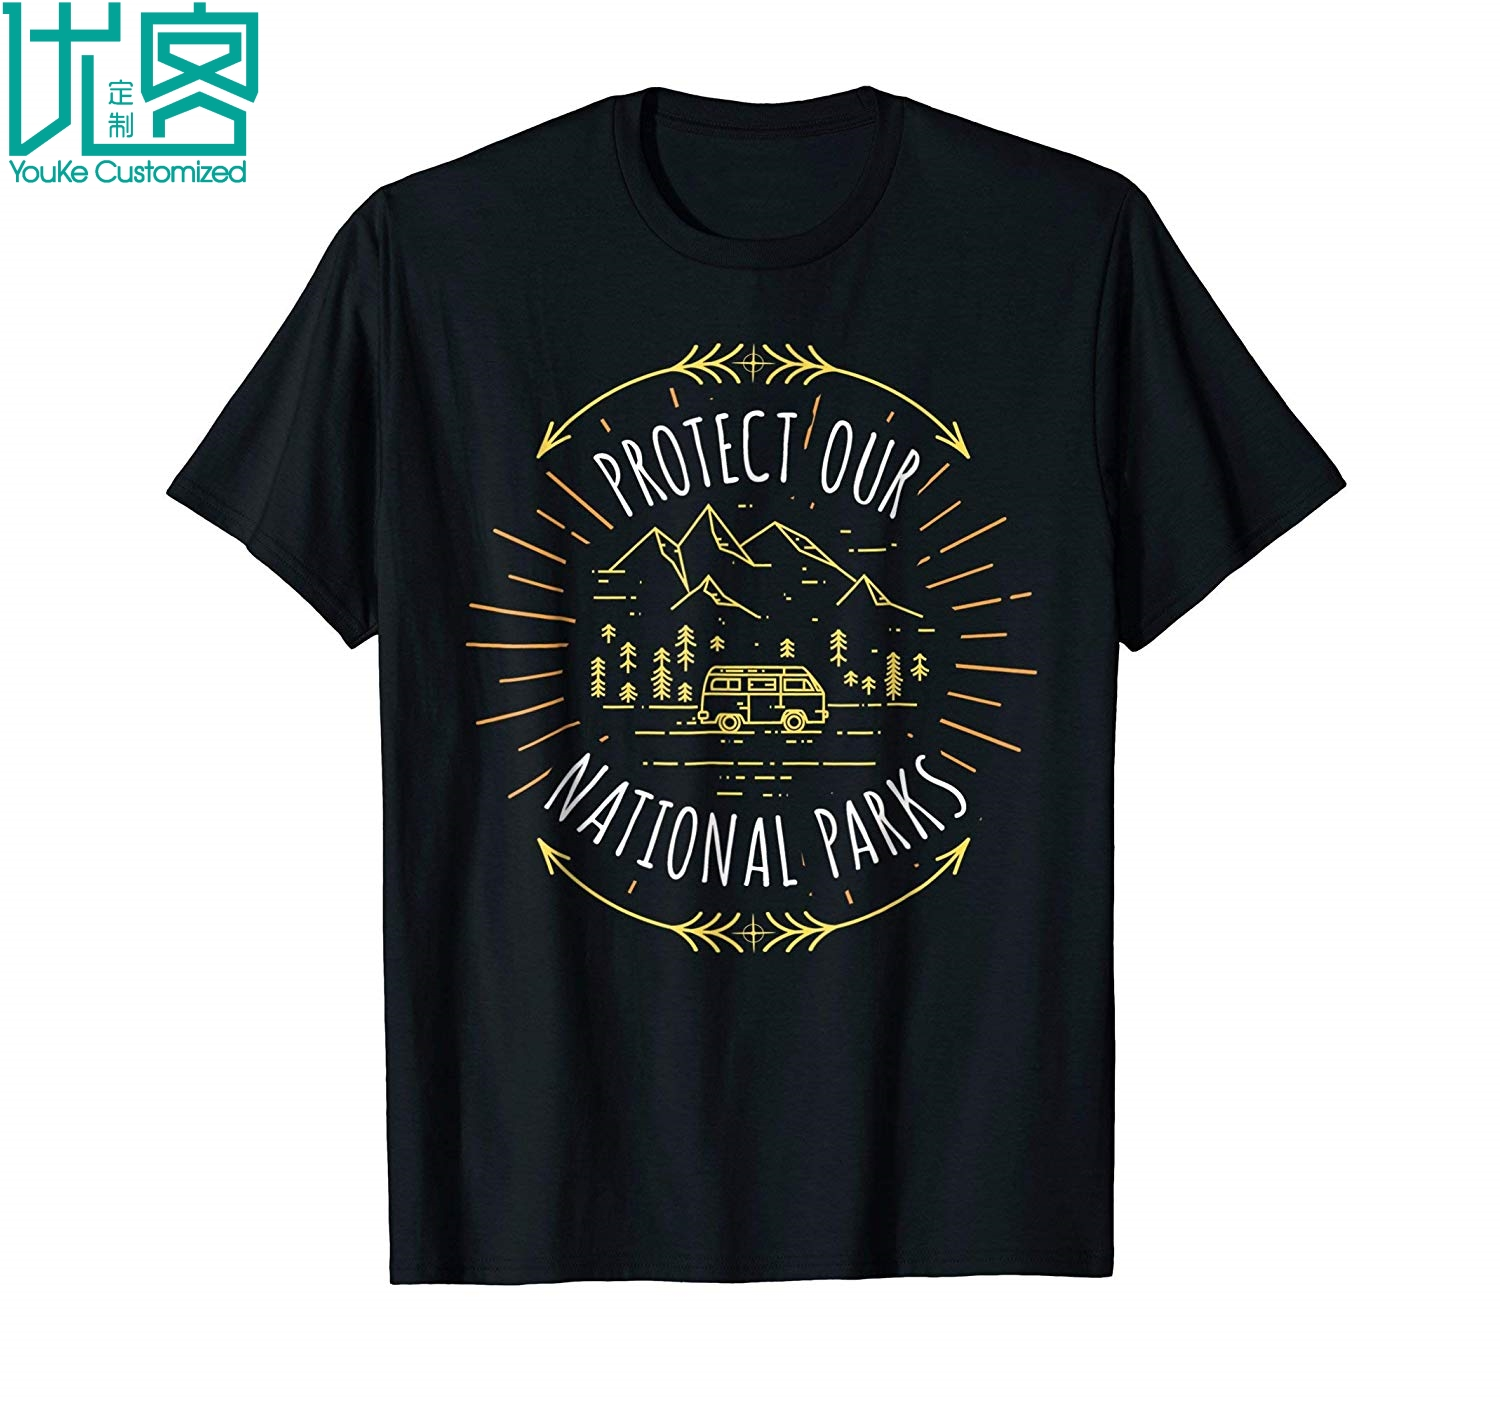 Protect Our National Parks Shirt Environmental Shirts 2019 Summer Men's Short Sleeve T-Shirt image